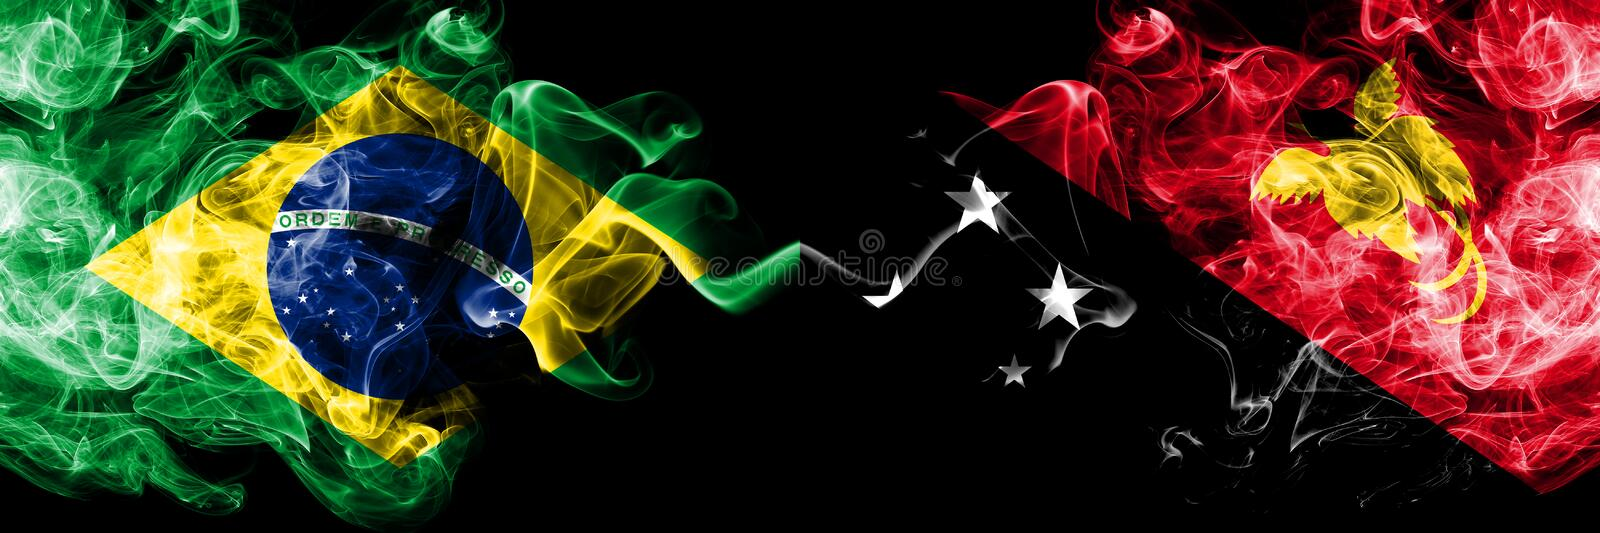 Brazil vs Papua New Guinea smoke flags placed side by side. Thick colored silky smoke flags of Brazilian and Papua New Guinea.  stock photography